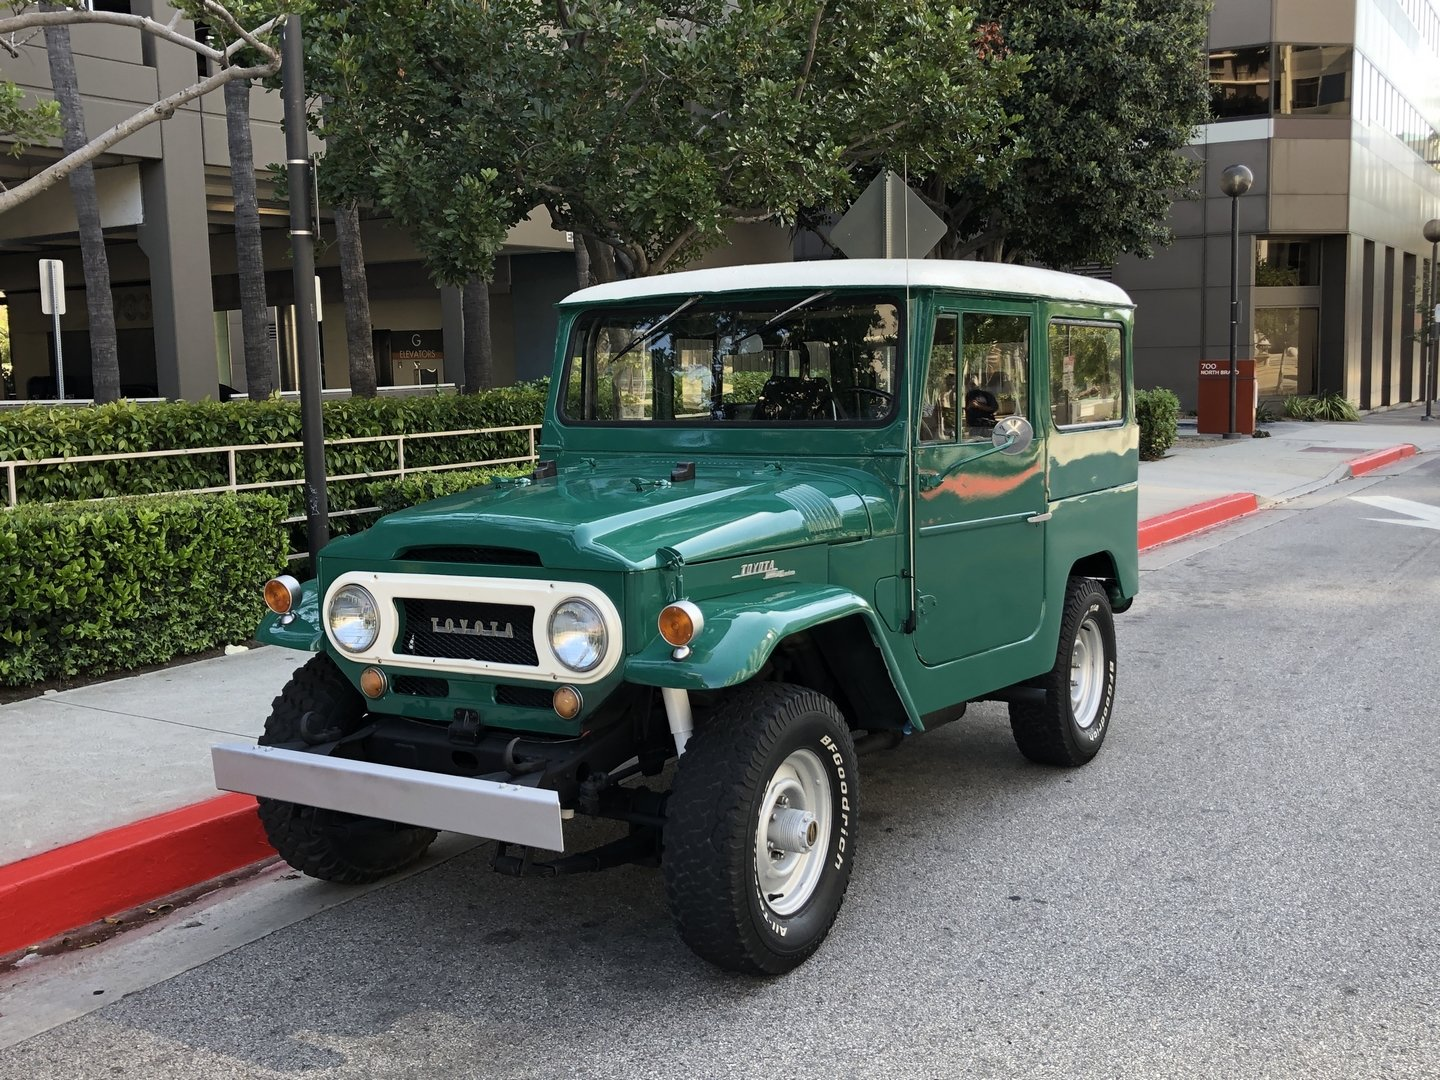 1969 TOYOTA LAND CRUISER FJ 40 For Sale (picture 1 of 6)